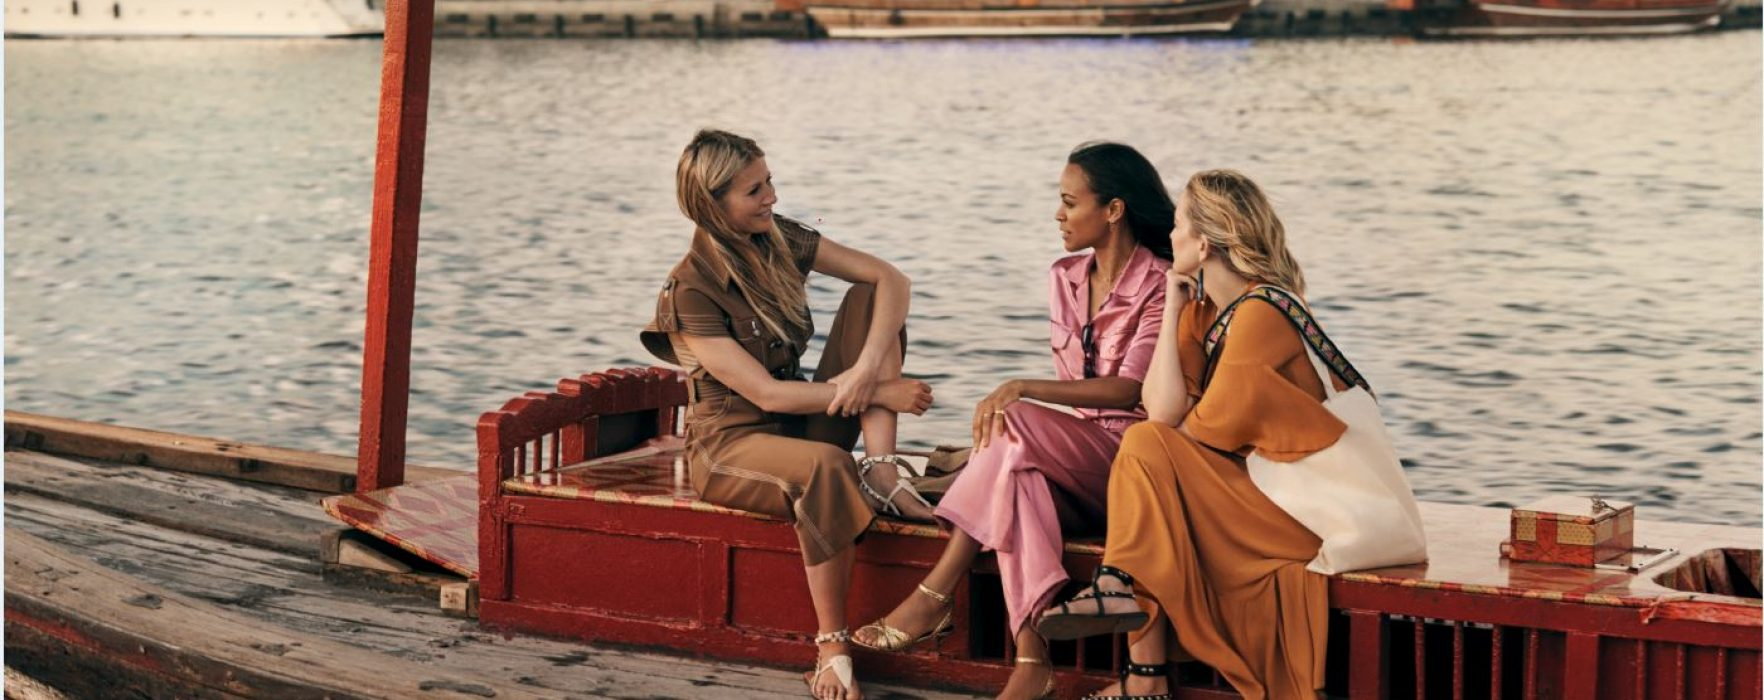 WATCH: Gwyneth Paltrow, Kate Hudson and Zoe Saldana star in unexpected film about self-discovery